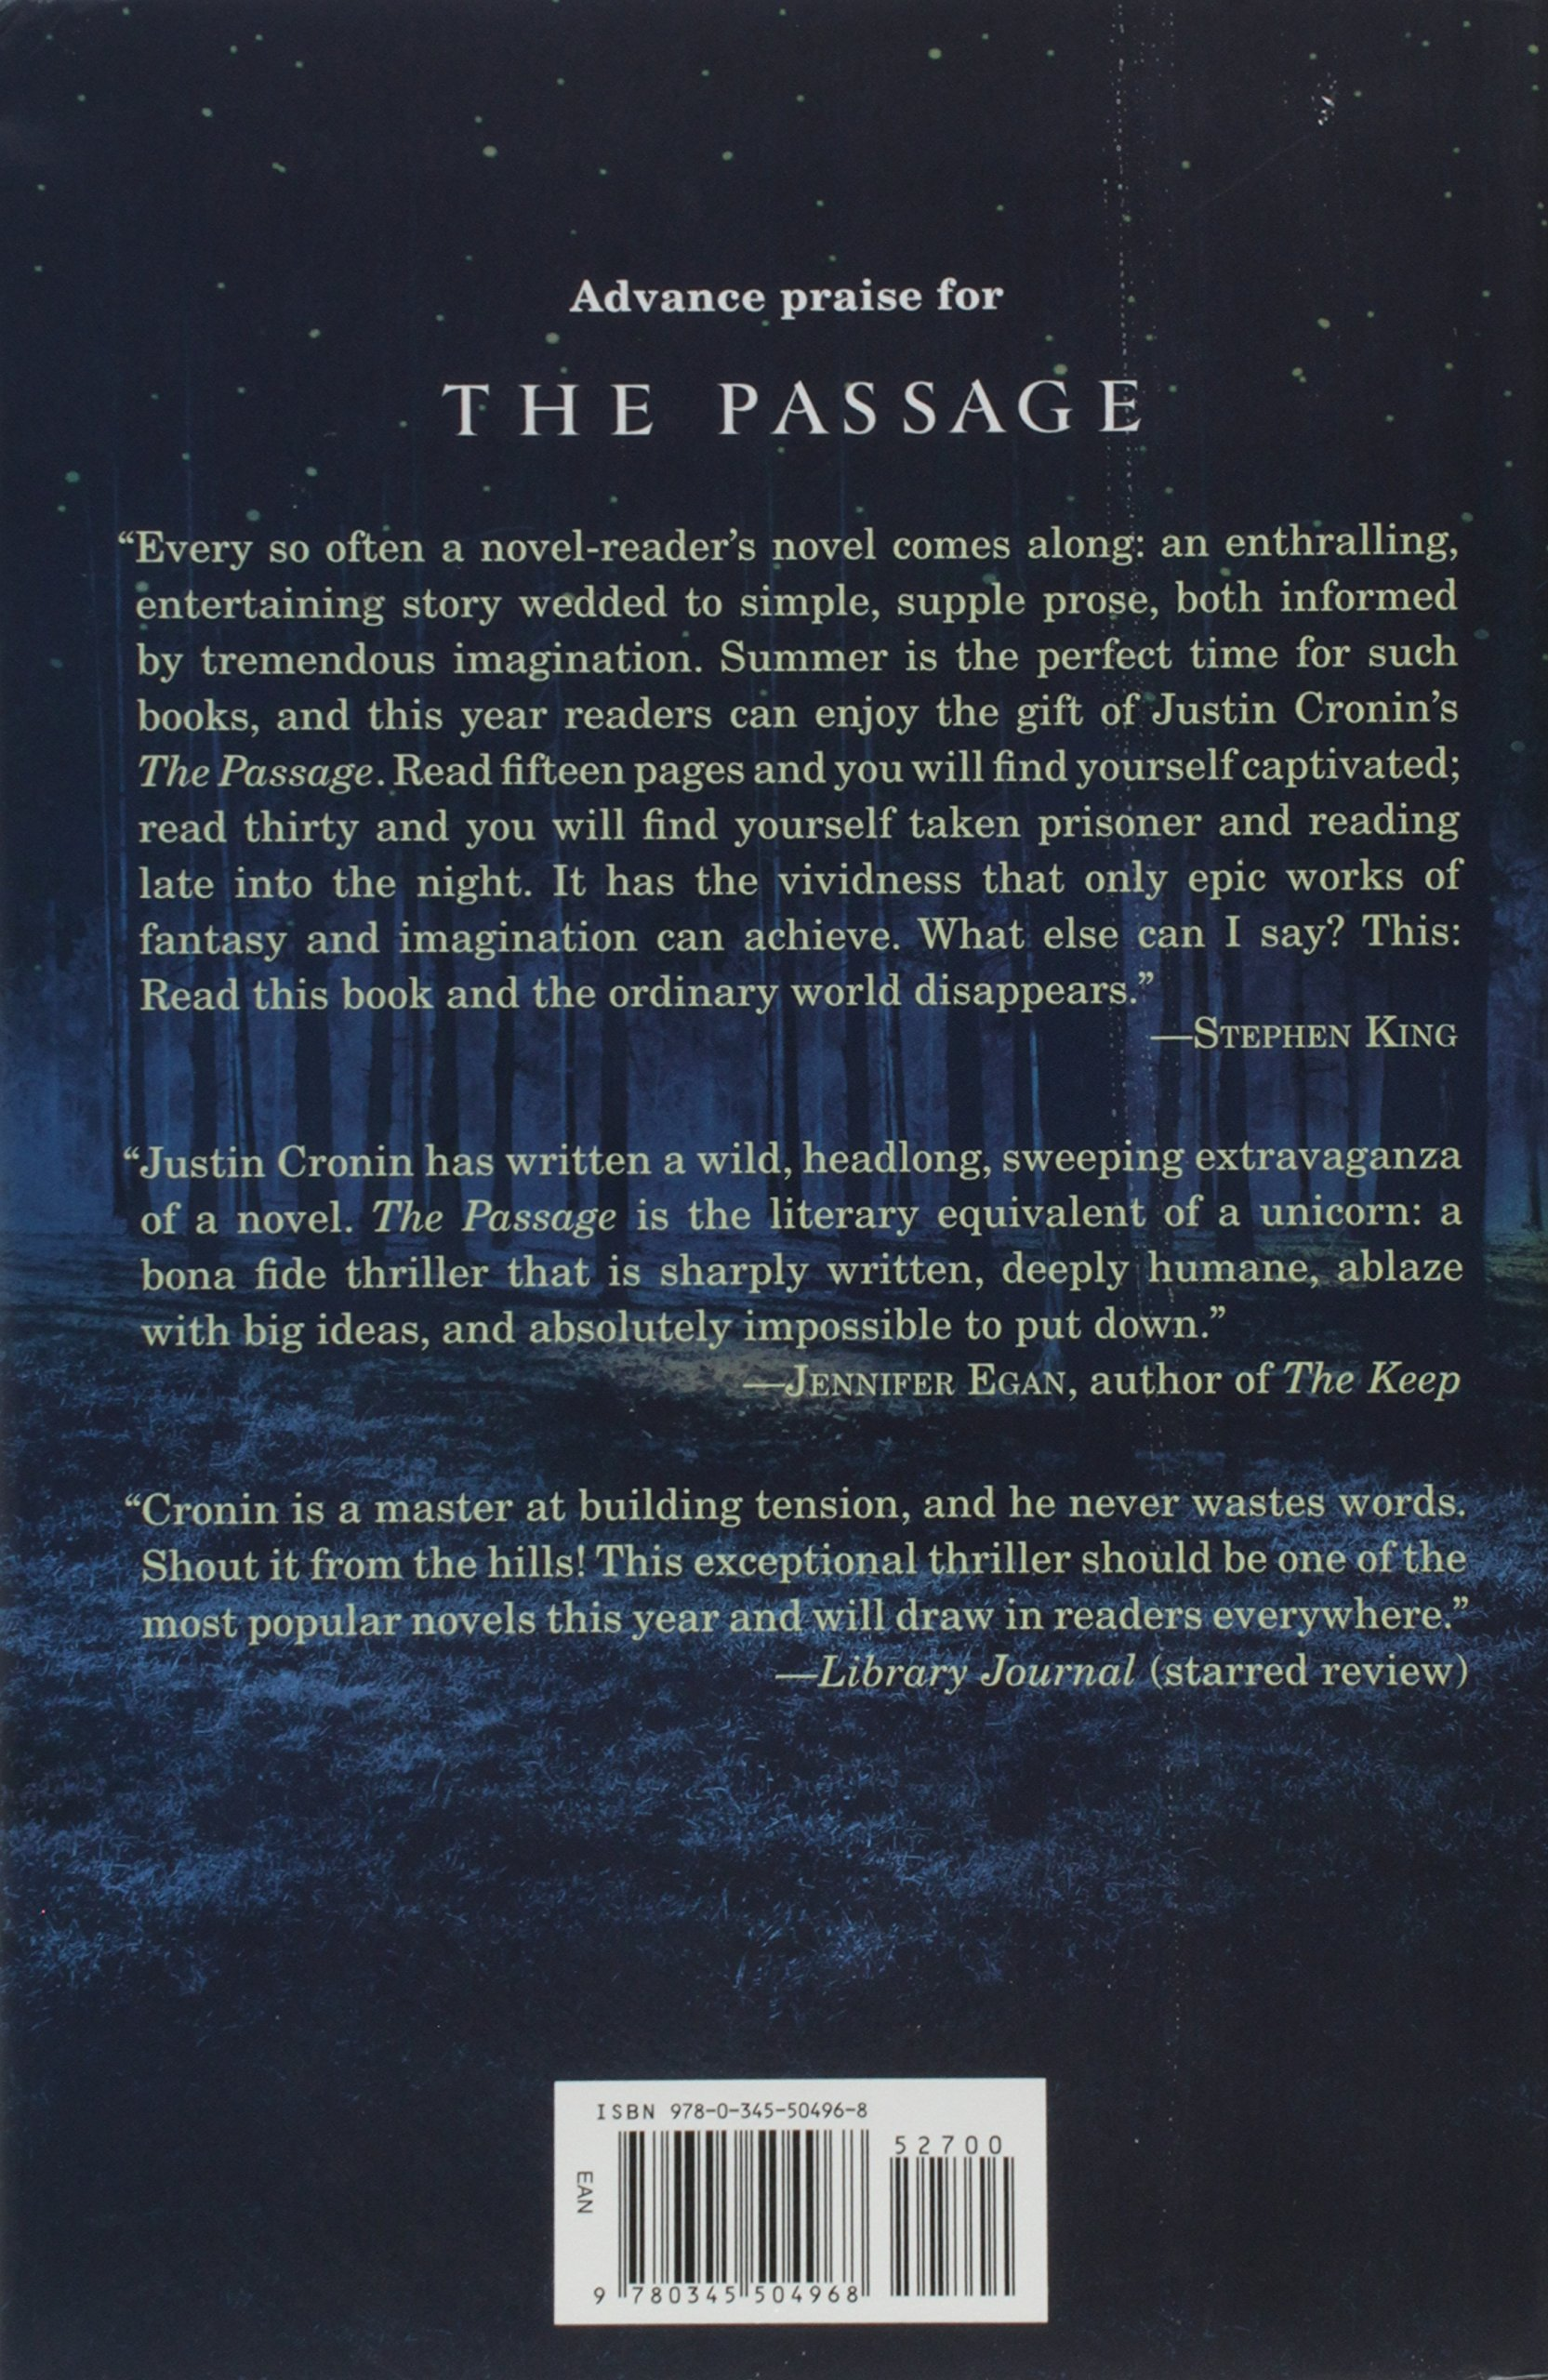 The Passage: A Novel (book One Of The Passage Trilogy): Justin Cronin:  9780345504968: Amazon: Books